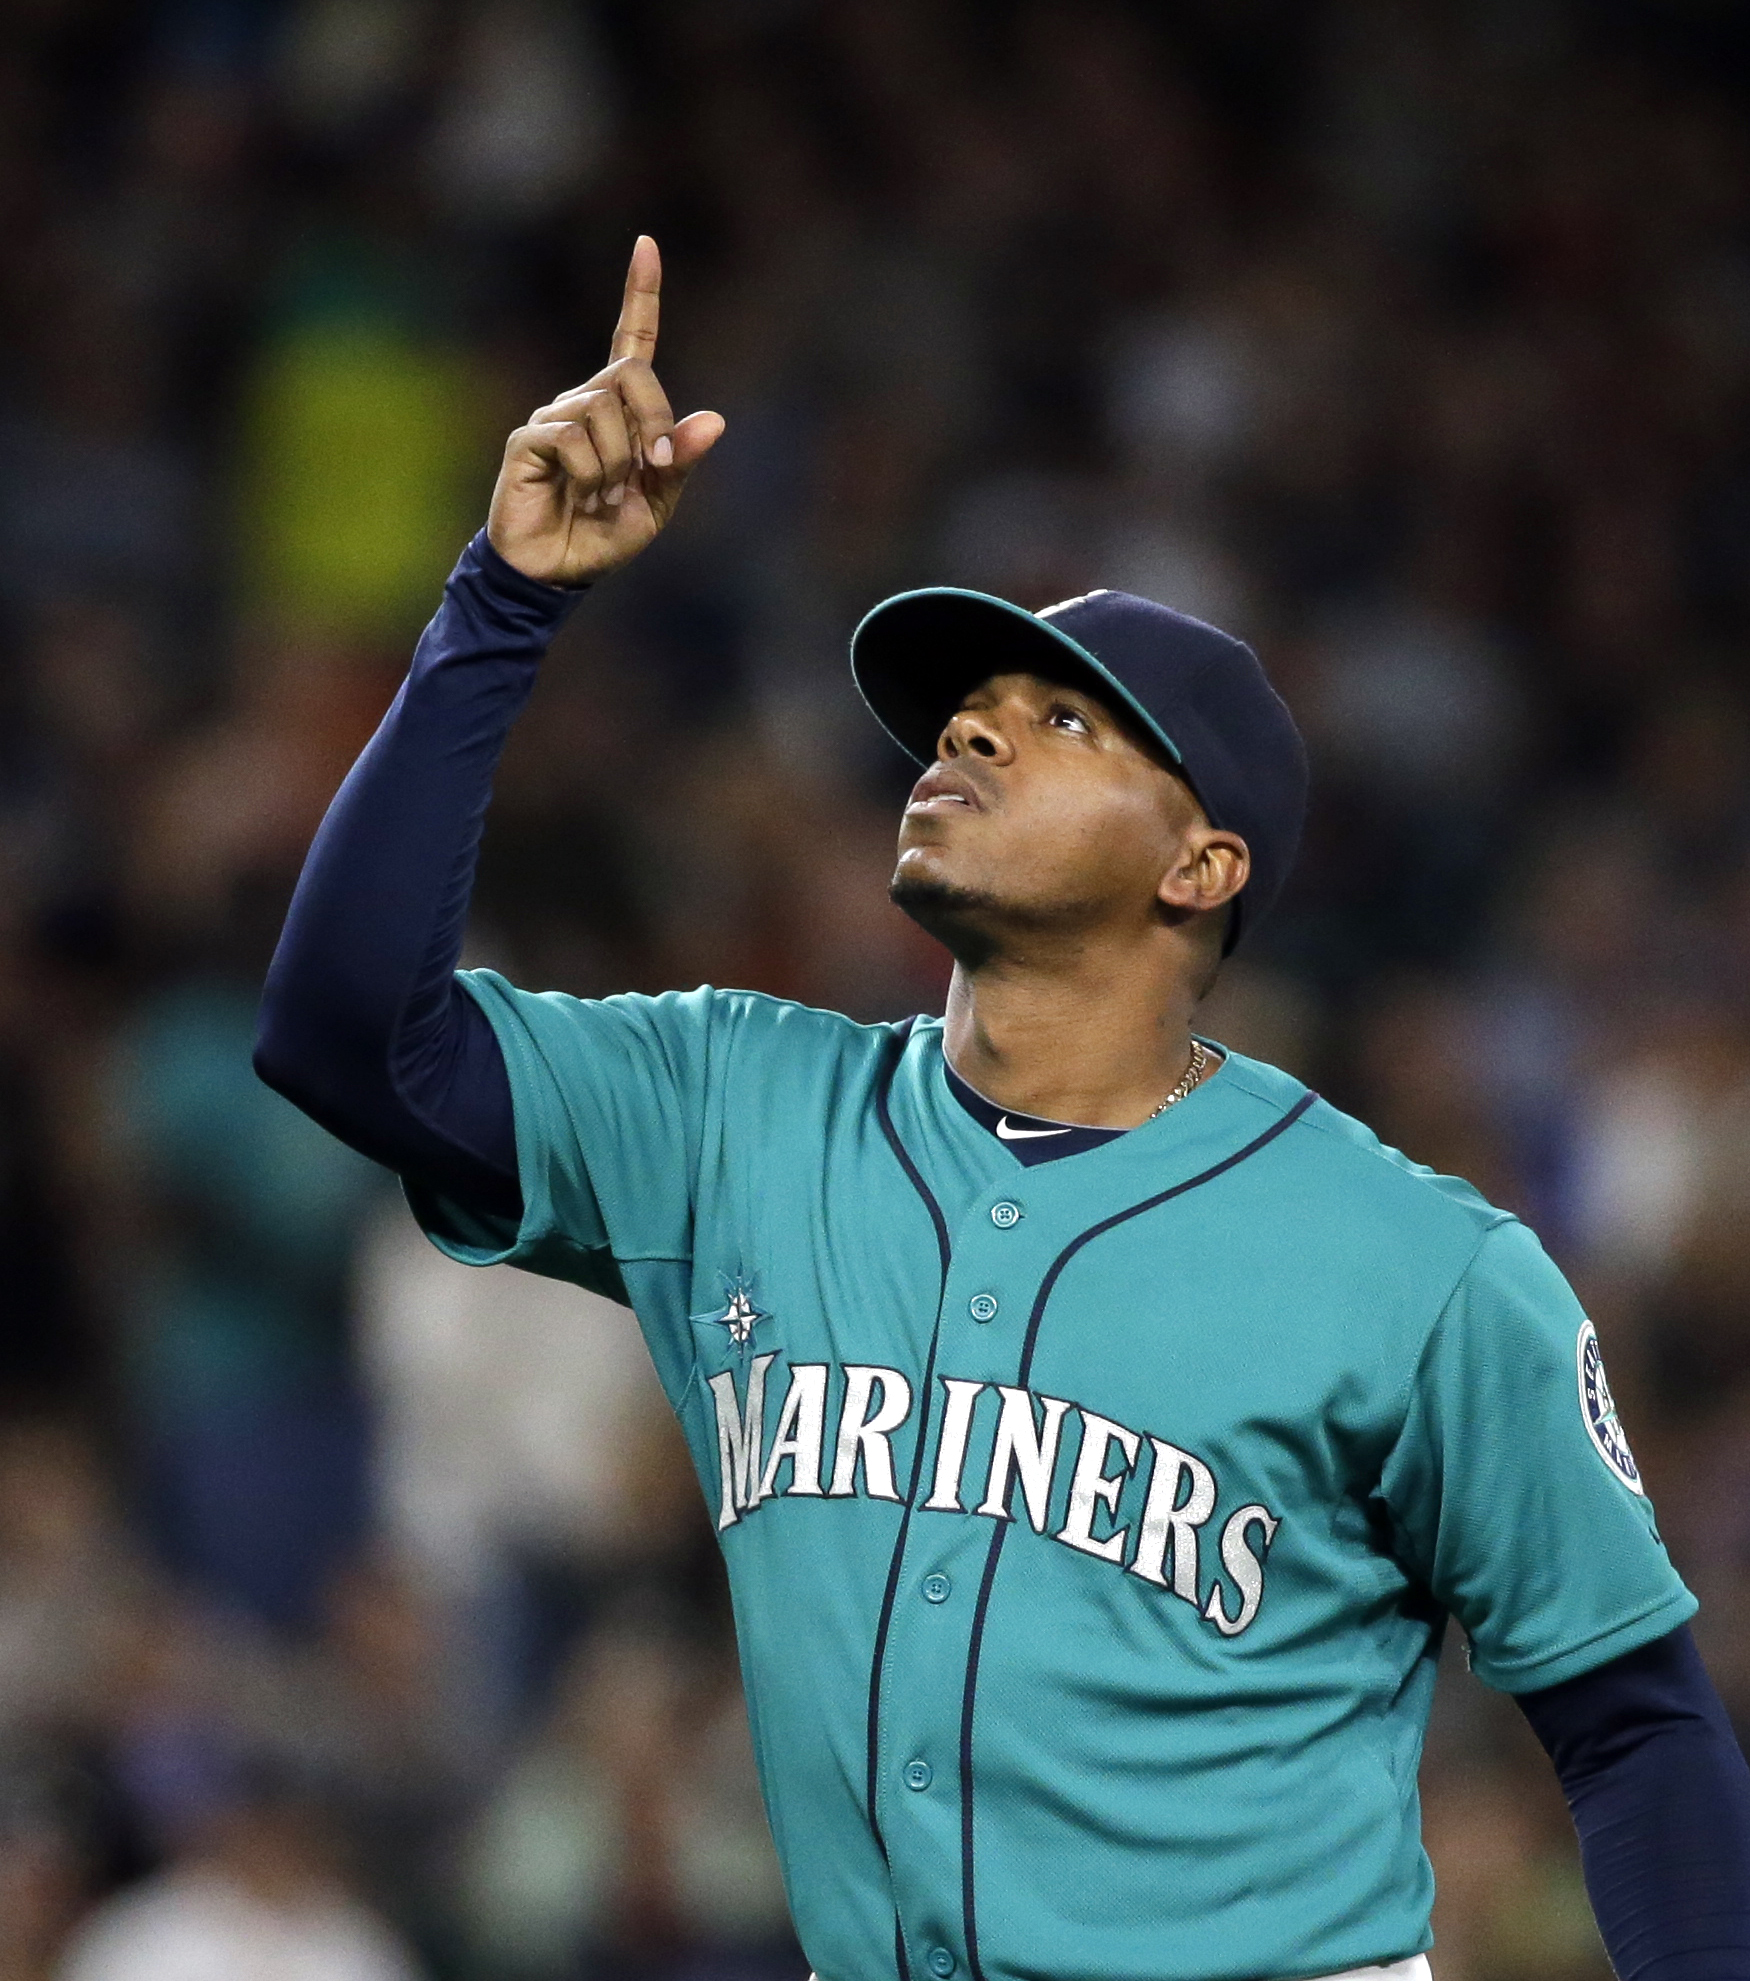 Seattle Mariners starting pitcher Roenis Elias points skyward as he walks off the field after being relieved against the Houston Astros during the eighth inning of a baseball game Friday, June 19, 2015, in Seattle. (AP Photo/Elaine Thompson)